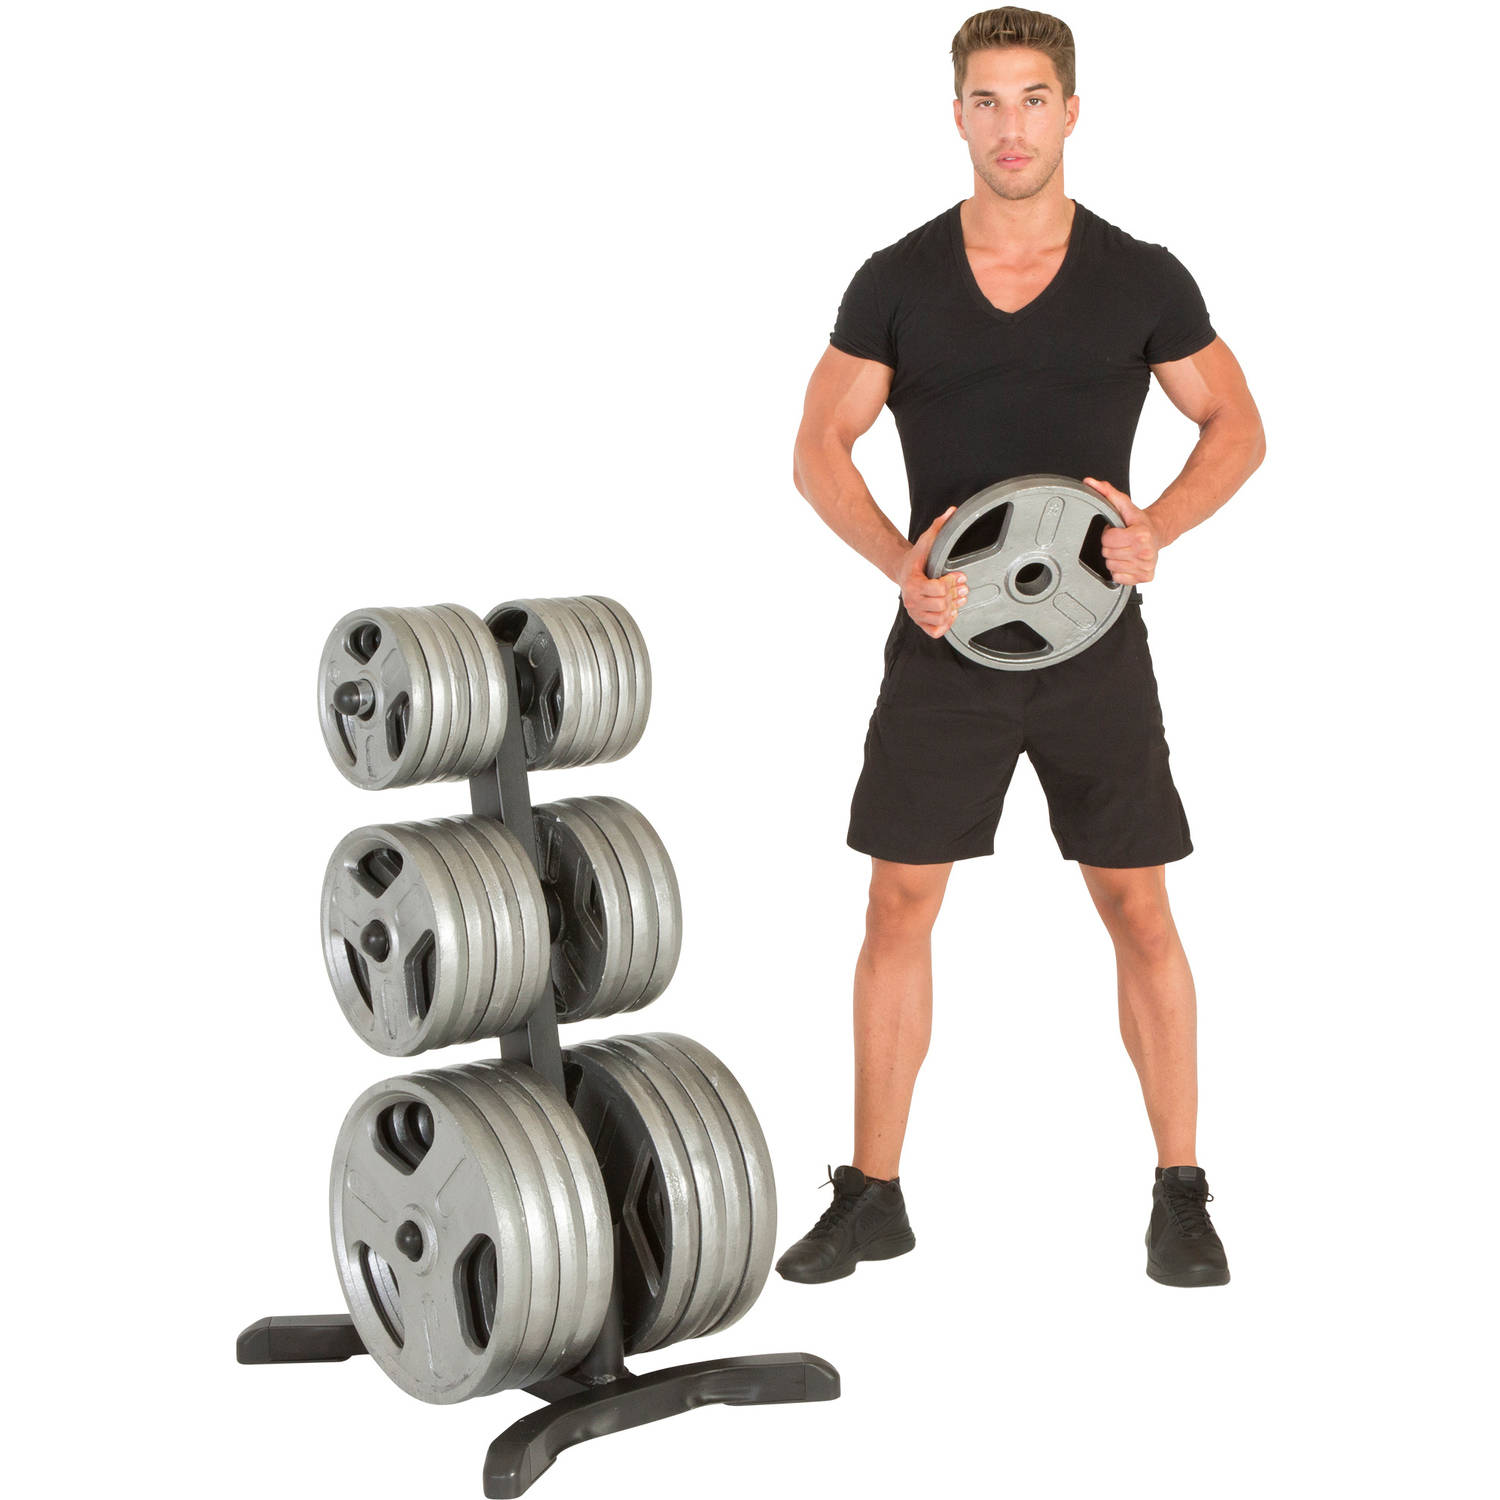 IRONMAN Triathlon X-Class Olympic Weight Tree, Bar Holders, Chrome Storage Posts, 1000 lb Weight Plate Capacity with Limited Lifetime Warranty